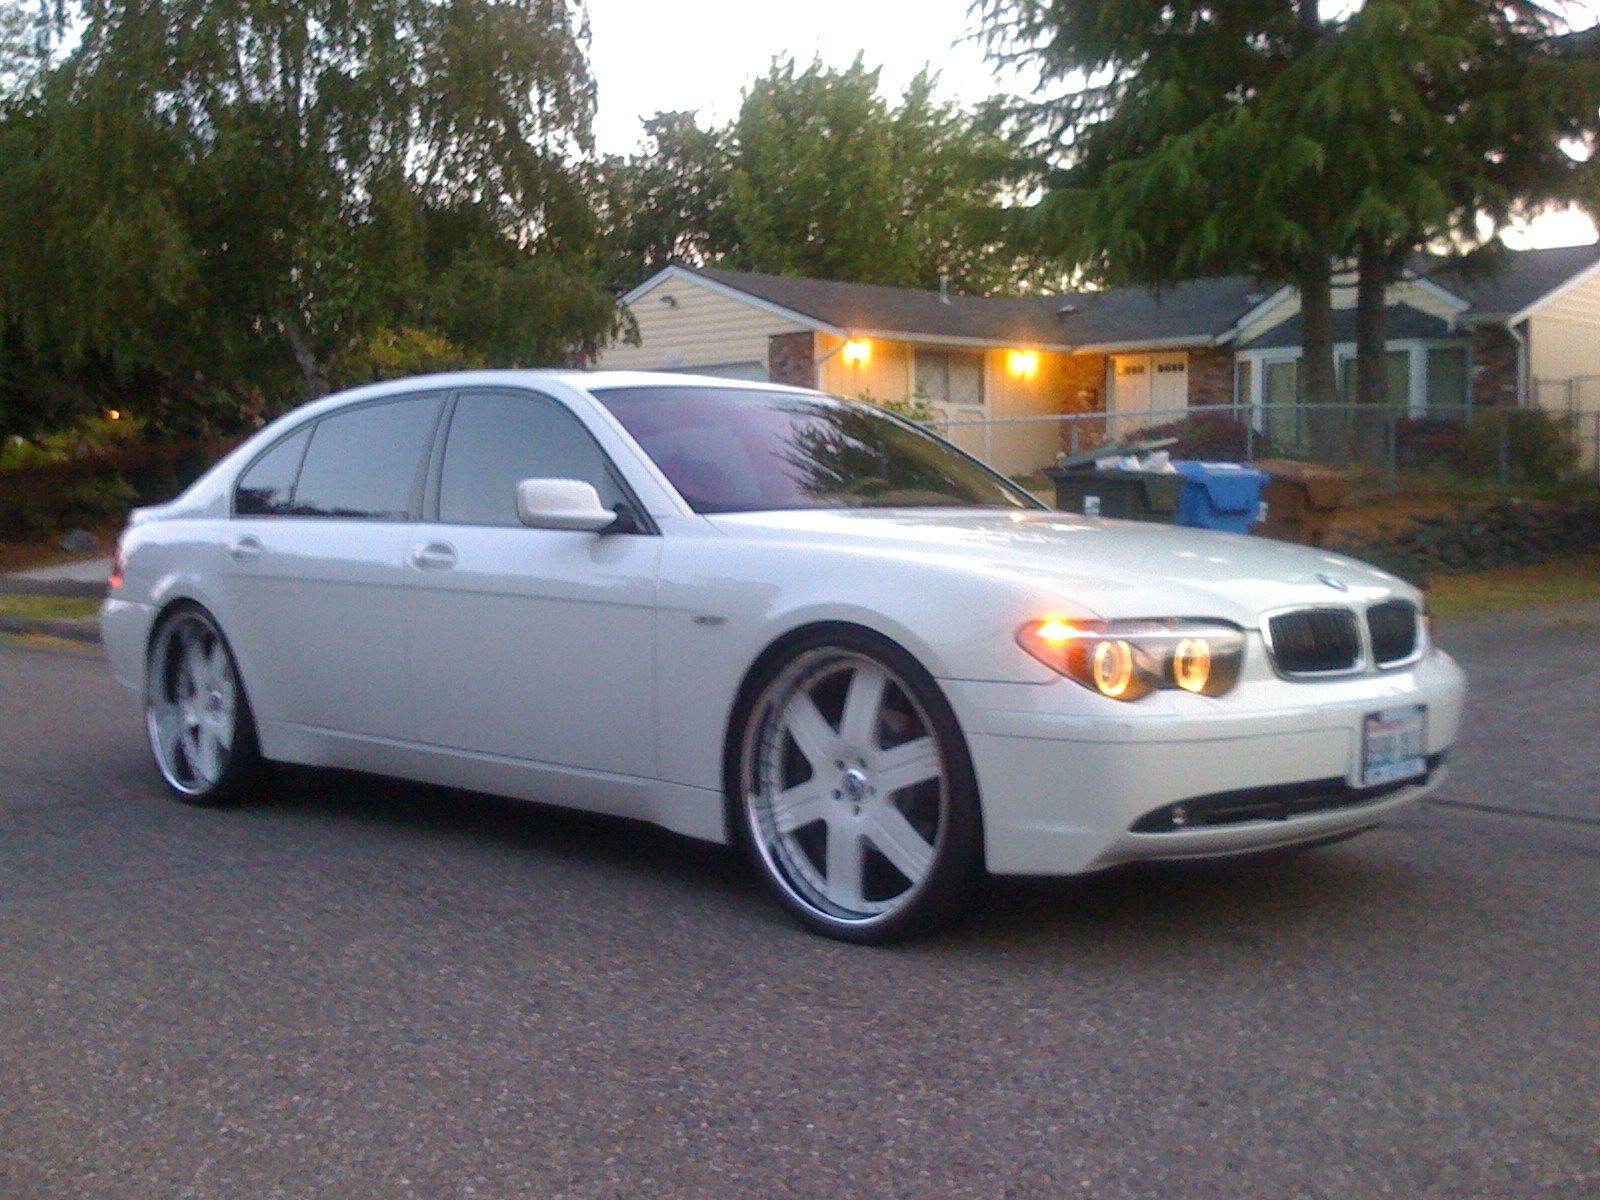 Youngtru Daboy 2004 Bmw 7 Seriess Photo Gallery At Cardomain